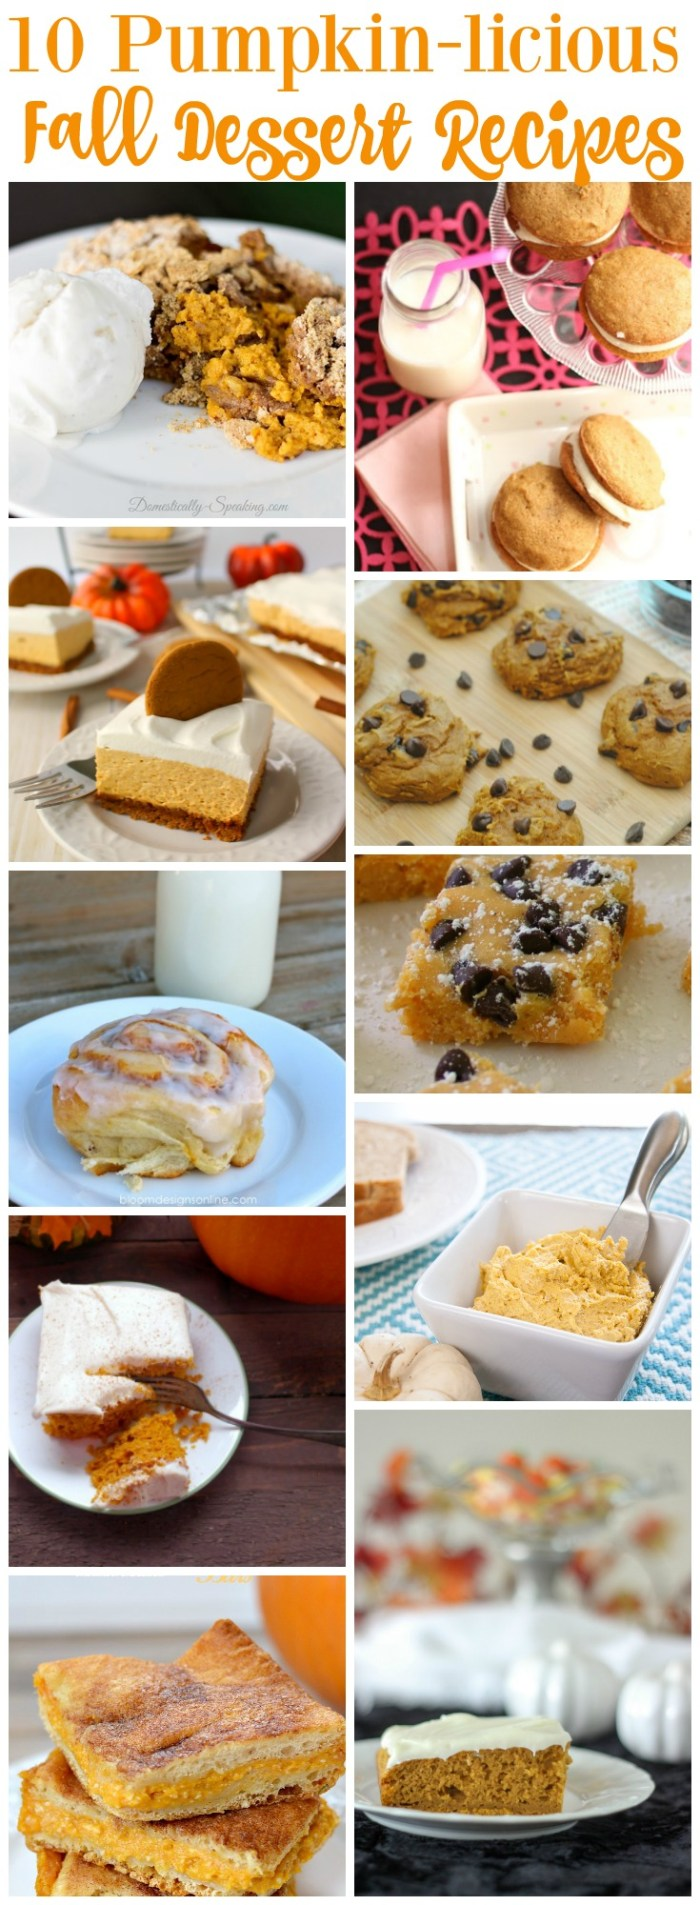 delicious-pumpkin-flavoured-treats-and-pumpkin-desserts-featured-with-these-10-pumpkin-vicious-fall-dessert-recipes